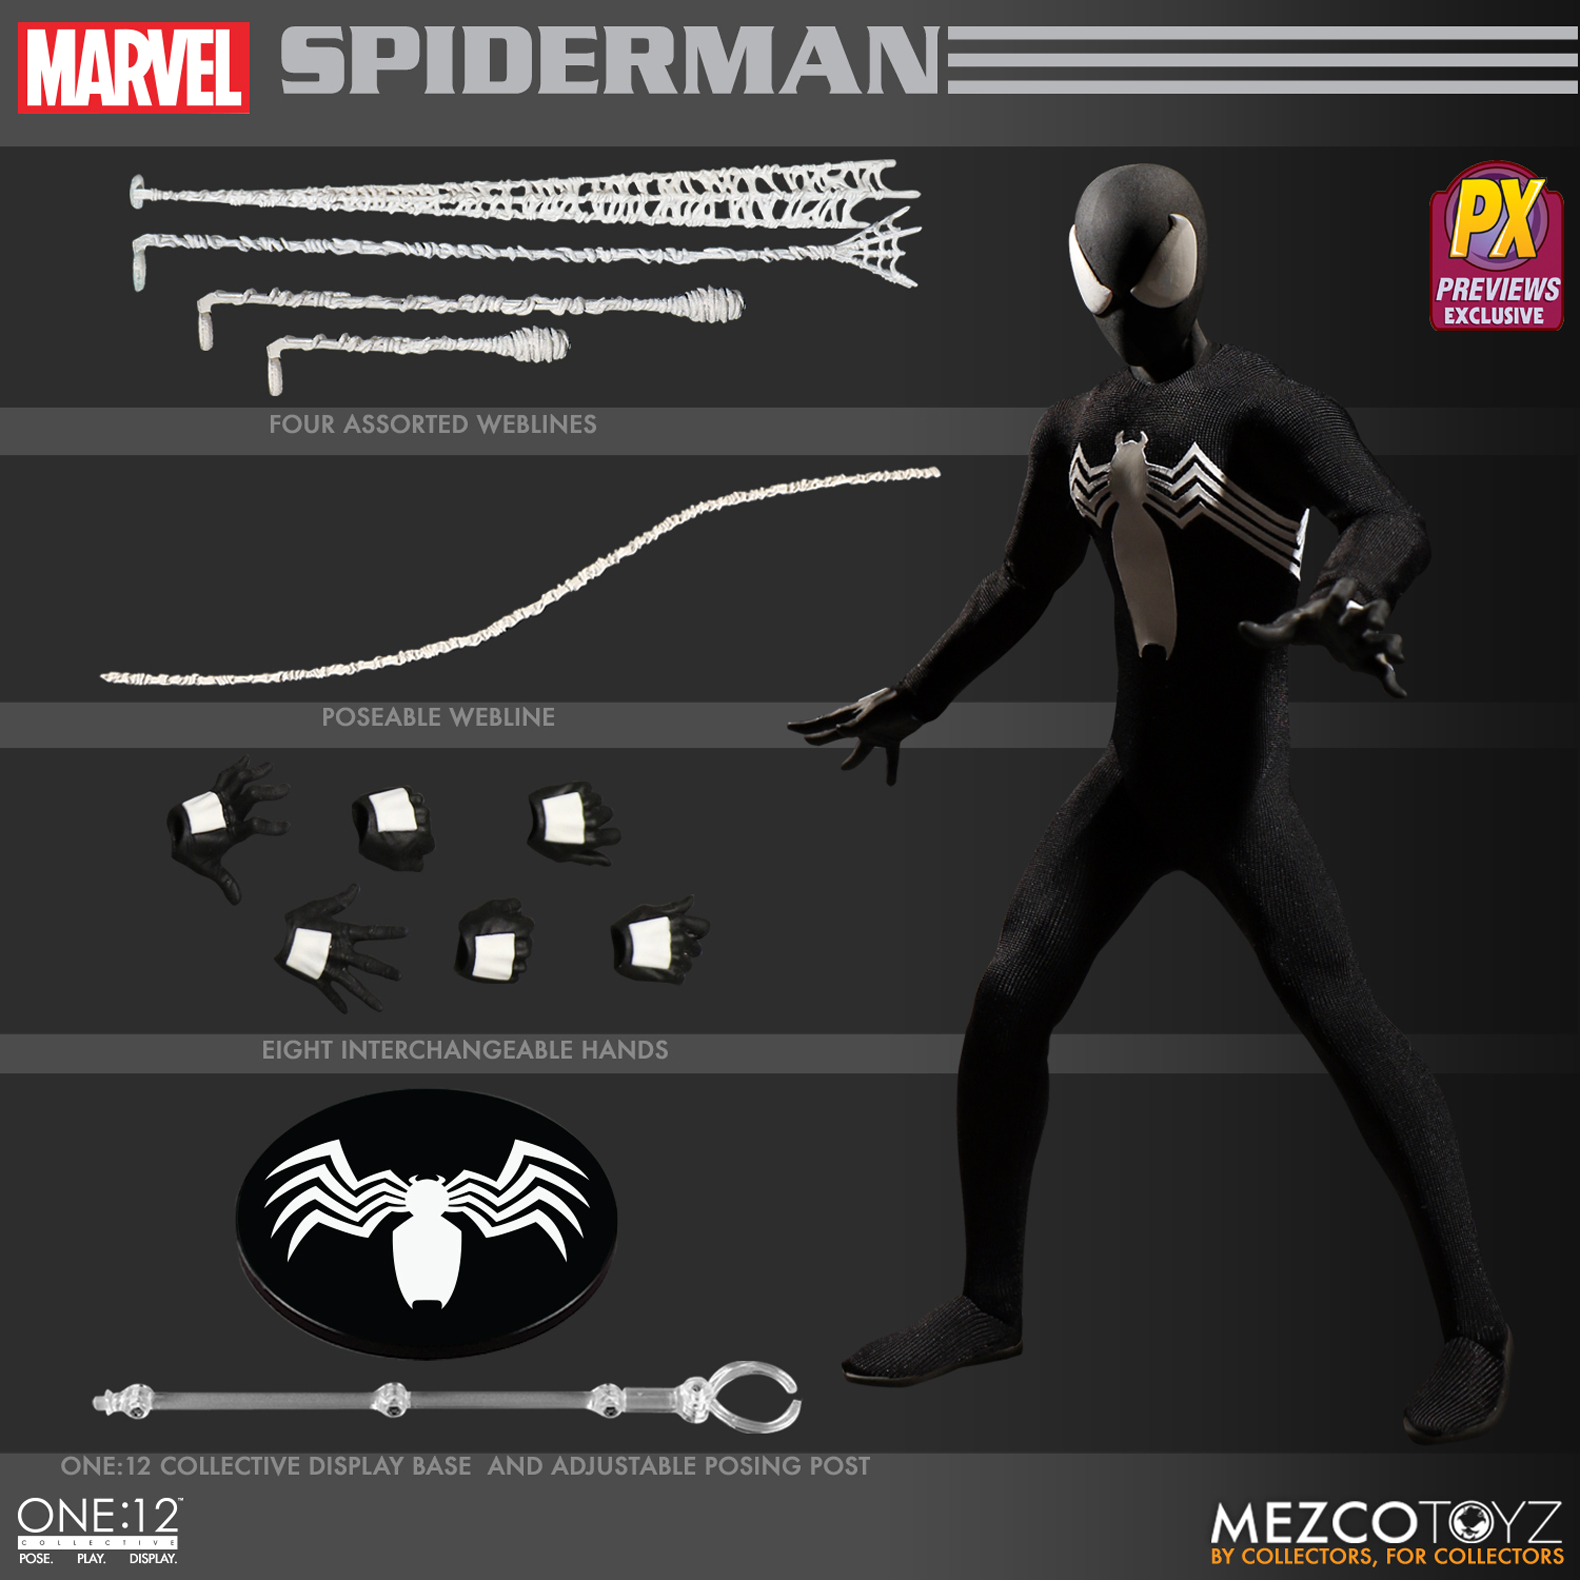 ONE-12 COLLECTIVE MARVEL SPIDER-MAN BLK VER PX AF